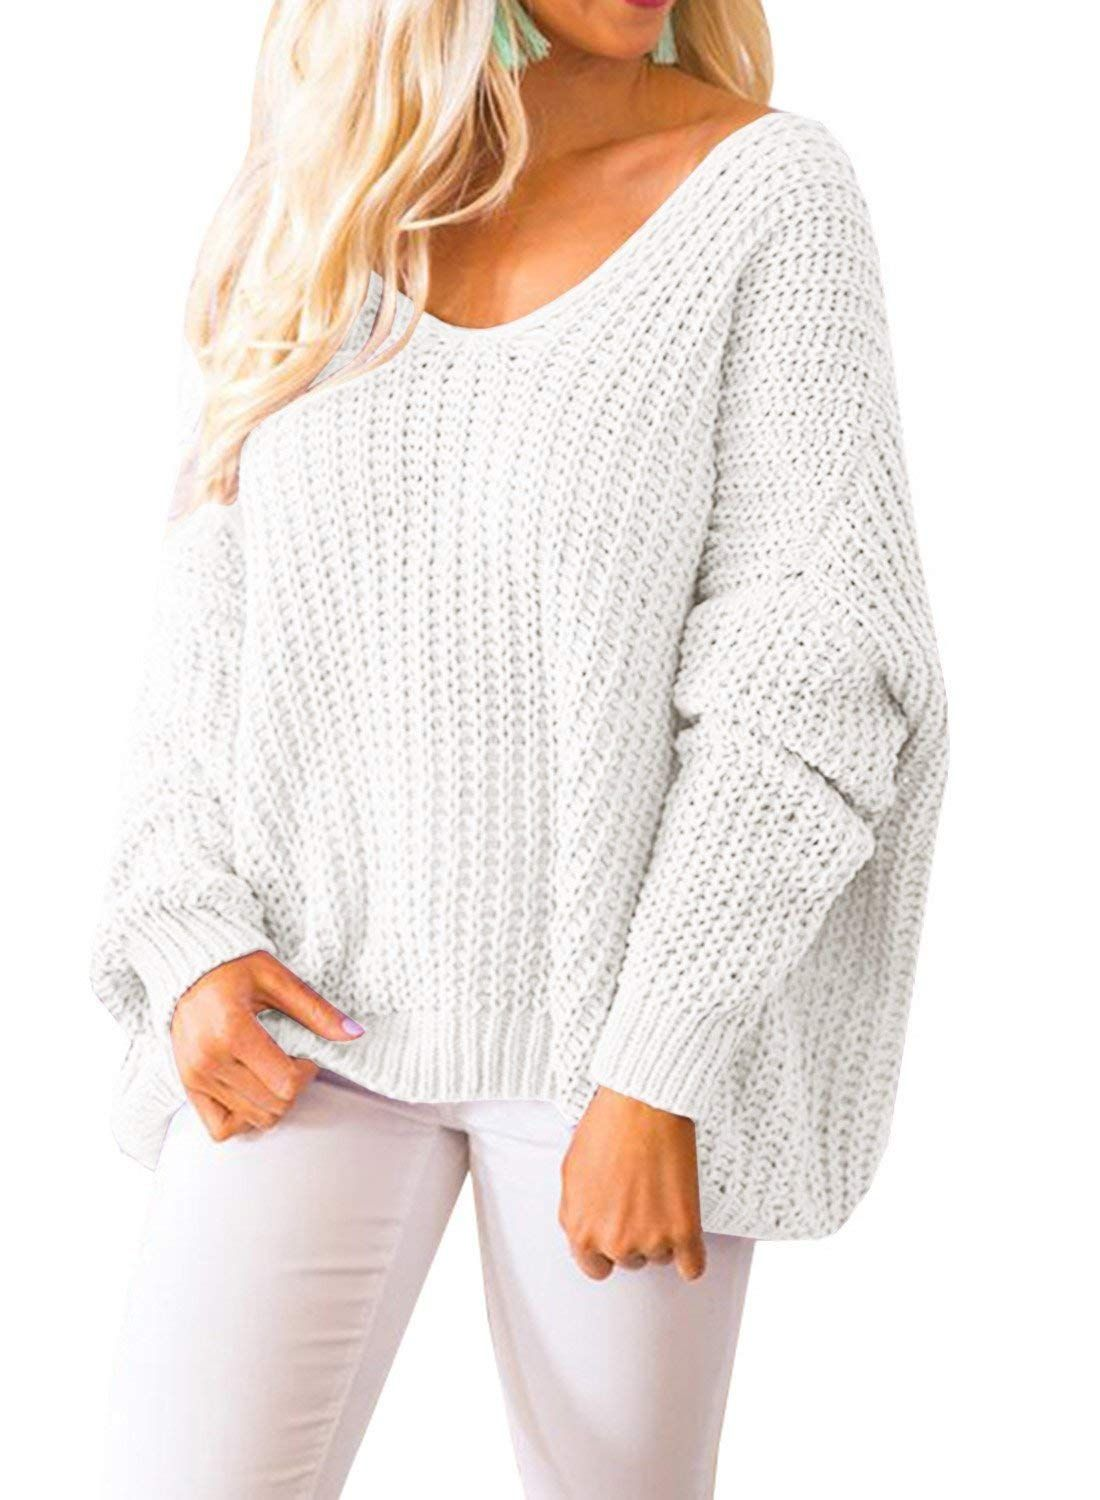 d128a735c7fc8c Nutashafeel Womens Off Shoulder Sweaters Long Sleeve Oversized Knitted  Pullovers Tops at Amazon Women's Clothing store: